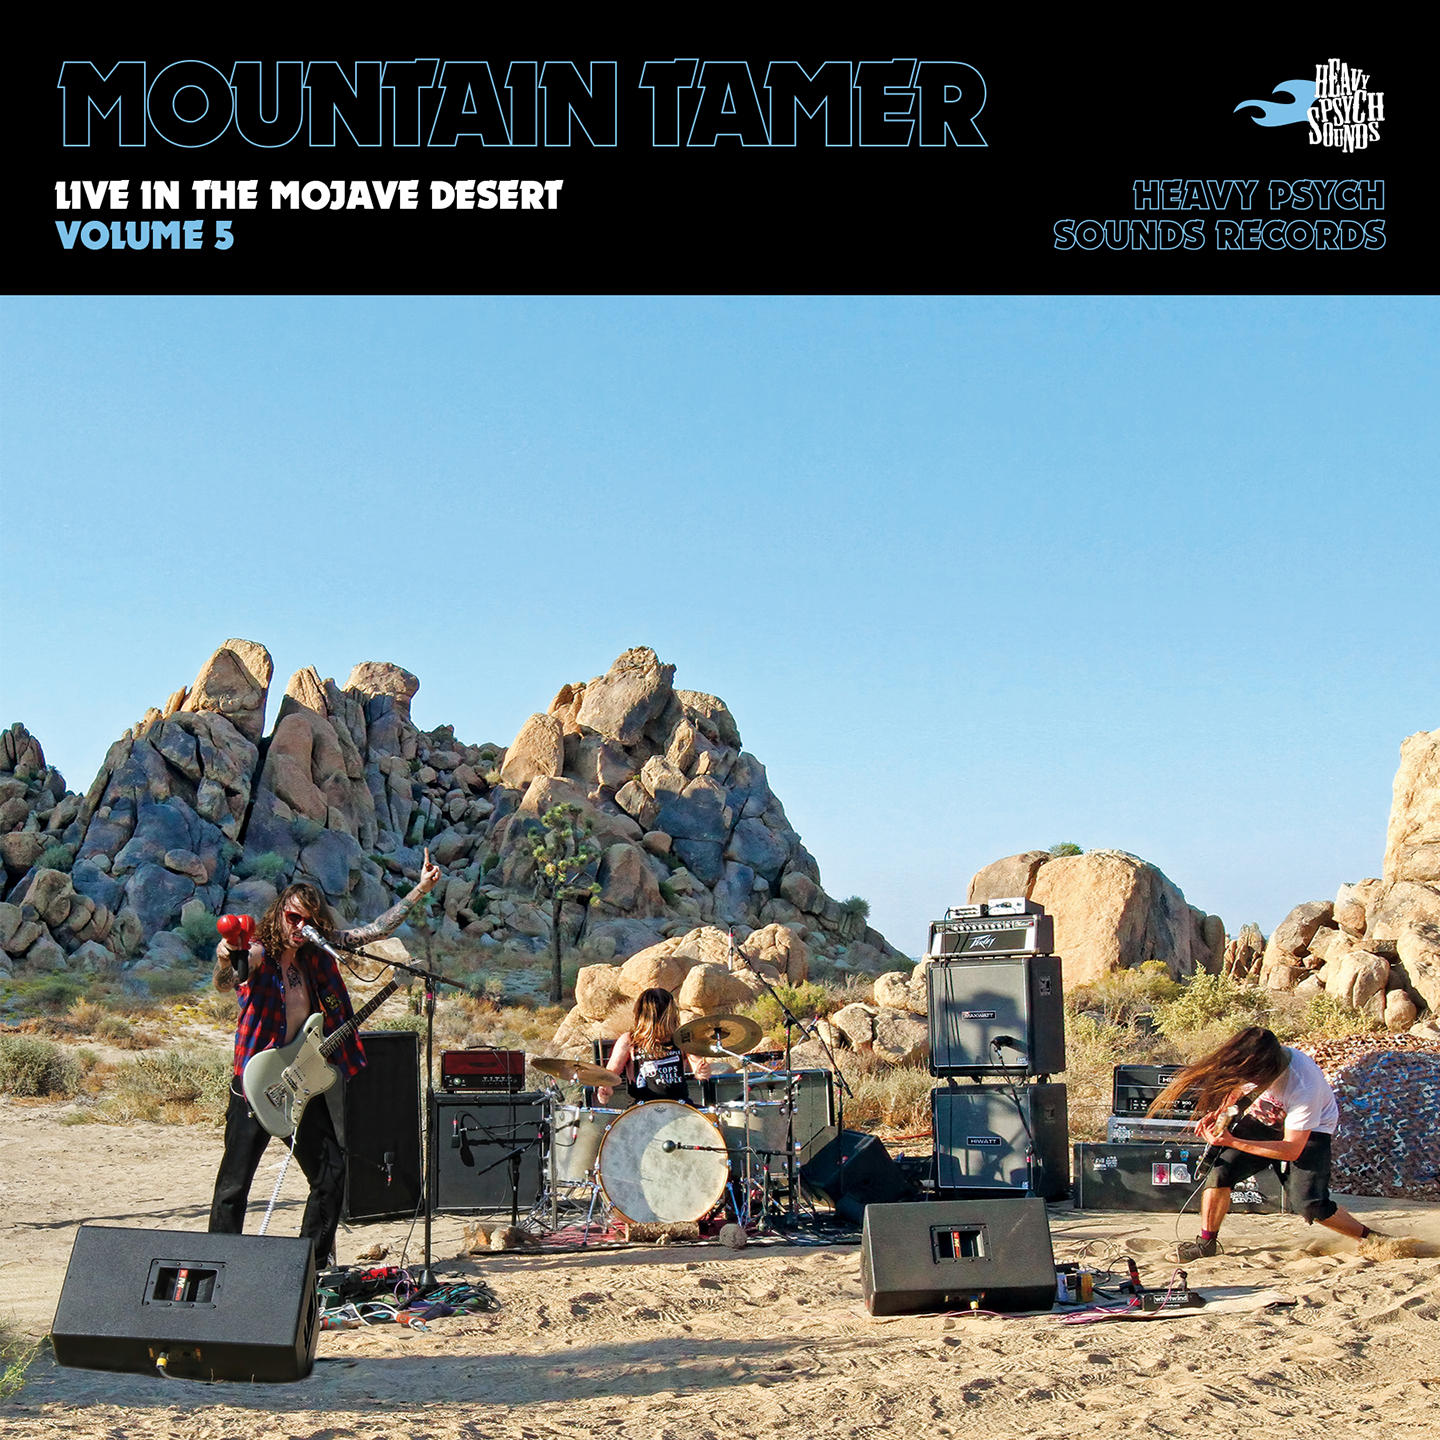 mountain tamer live in the mojave desert